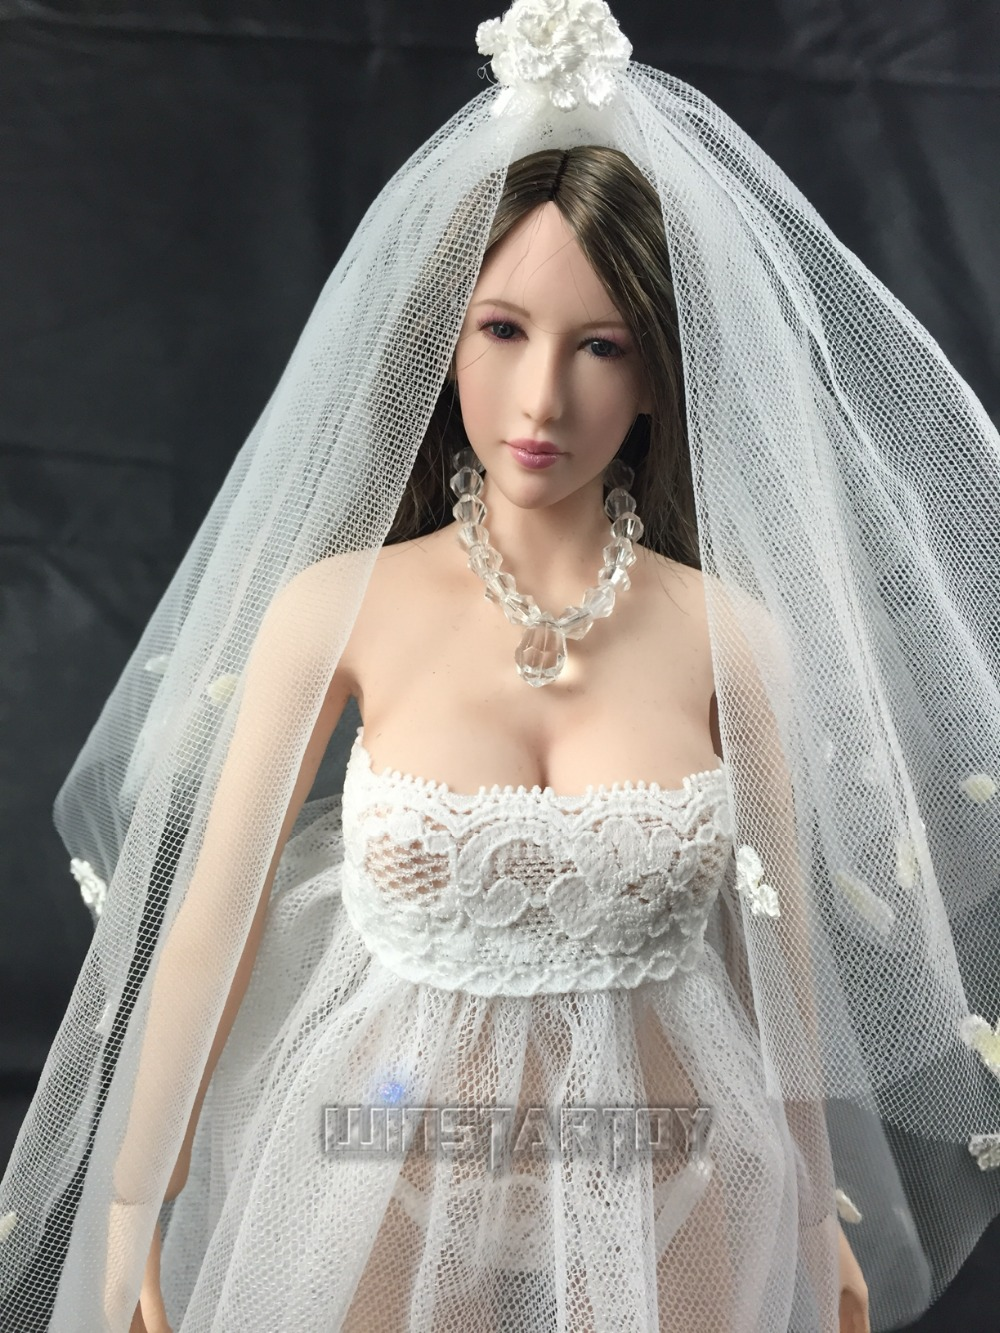 full hand made 1 6 Sexy lace wedding dress B version for Phicen Hot stuff  Jodoll OB UD LD doll action figure DIY 73f7186d3849